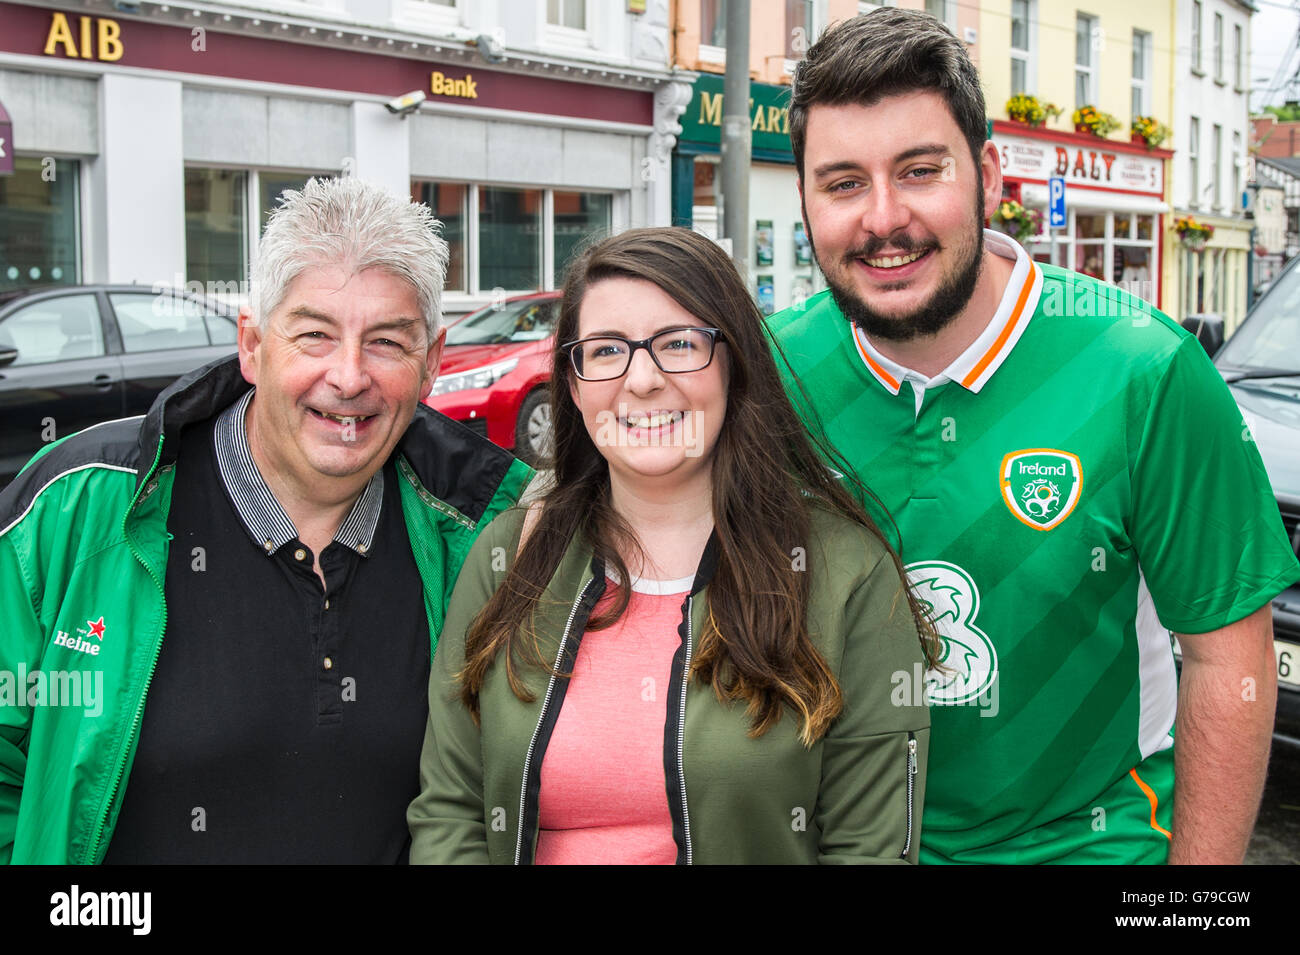 Skibbereen, West Cork, Ireland. 26th June, 2016. Ireland fans Brian, Rebecca and Shane Hourihane, all from Skibbereen, - Stock Image